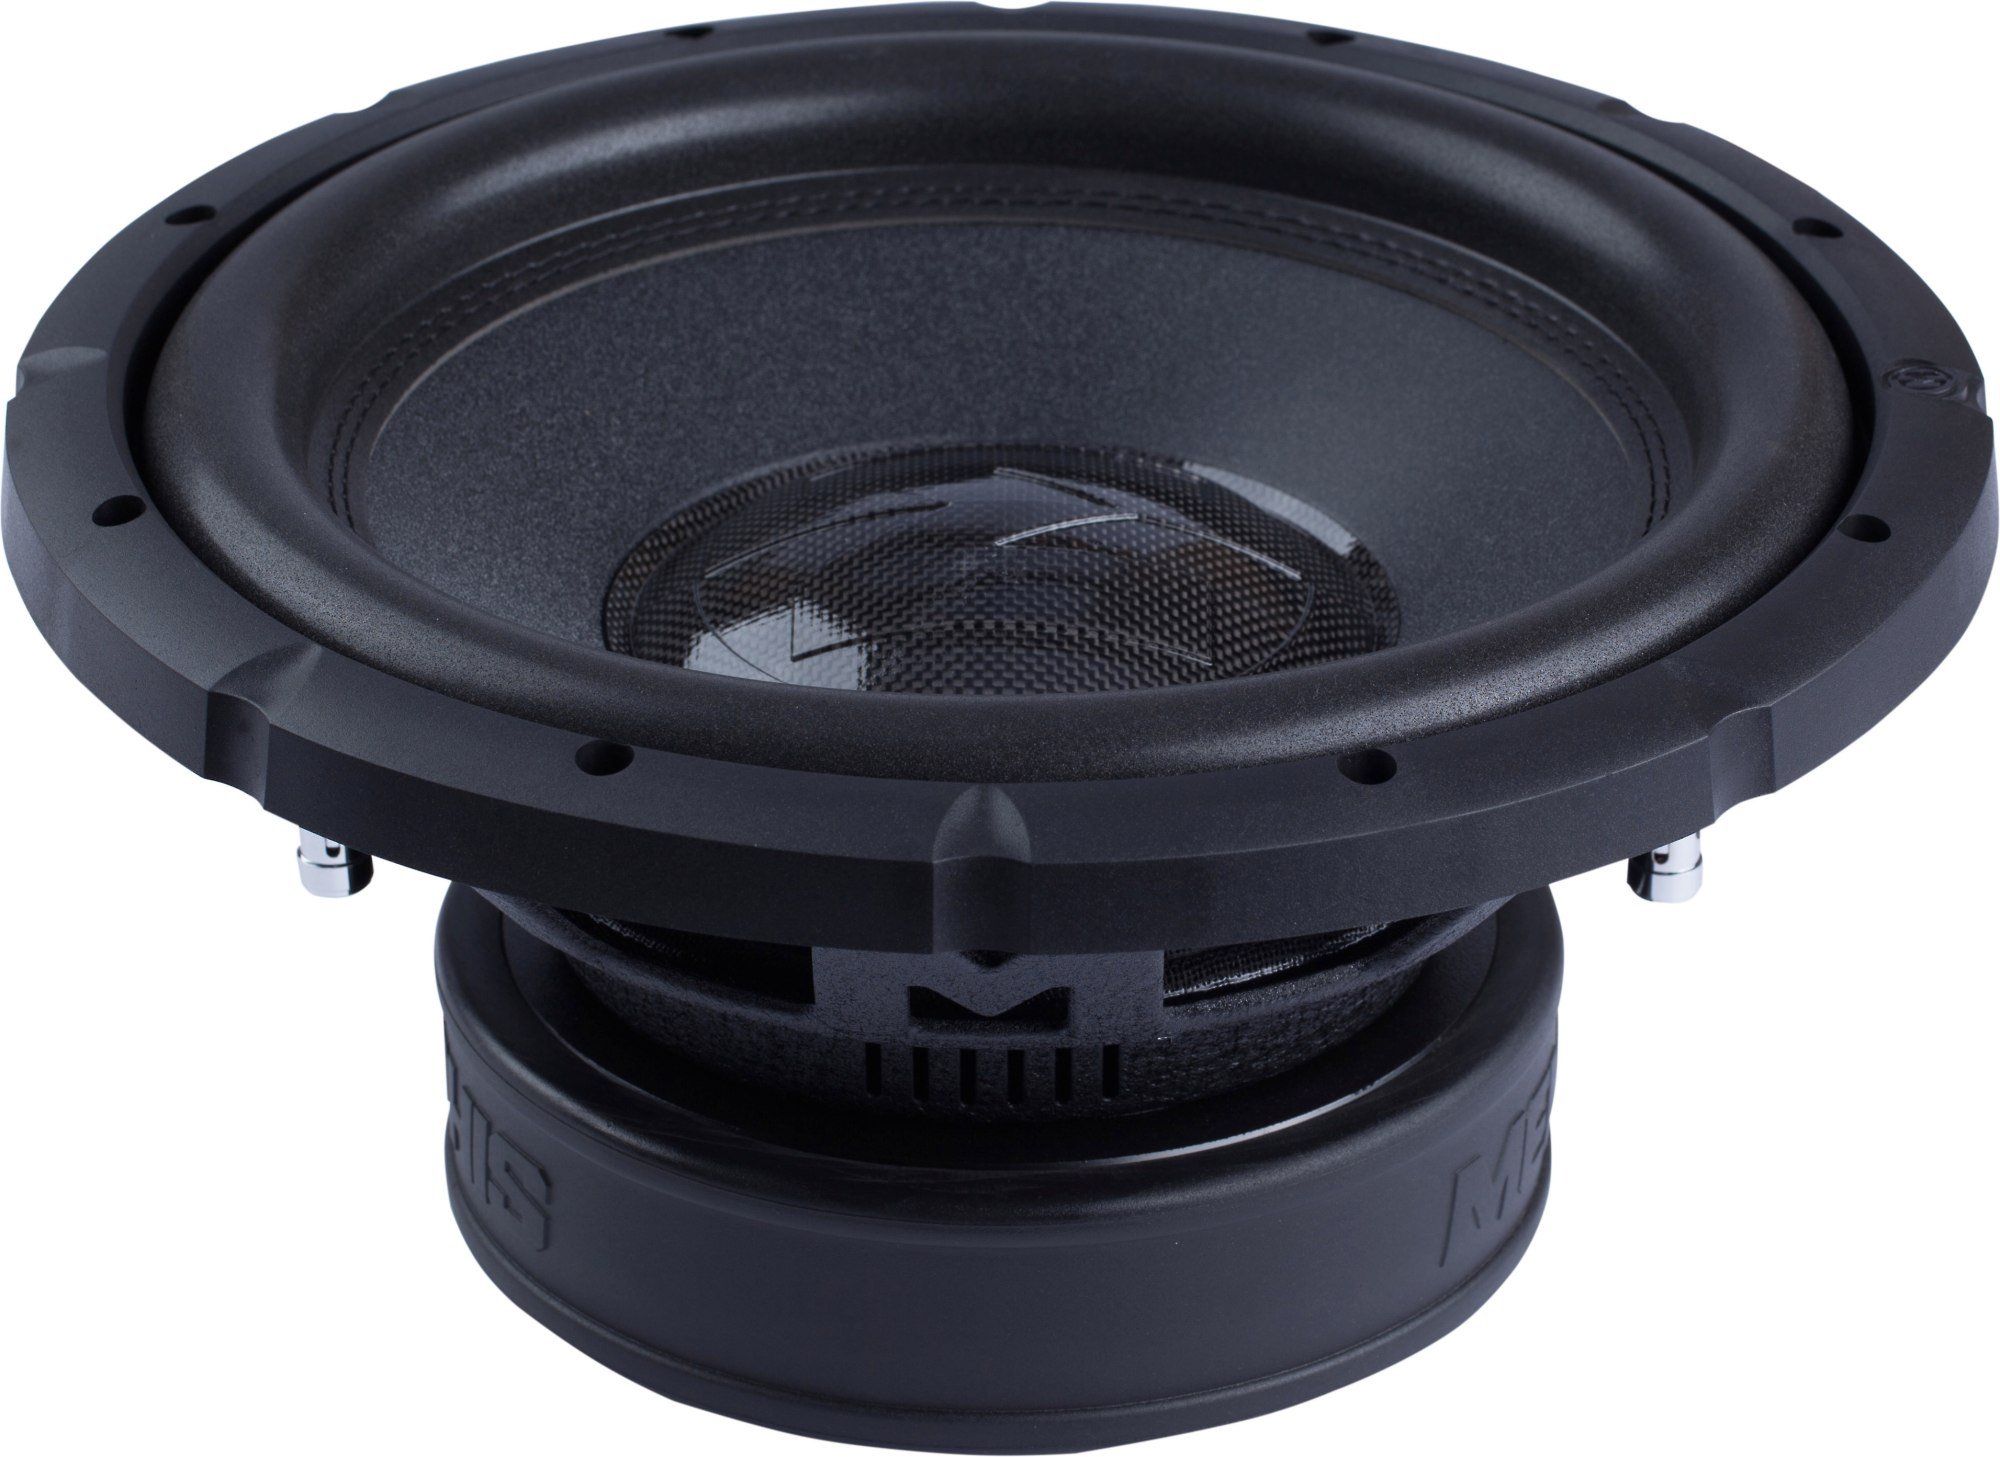 hight resolution of memphis audio brx1244 bass reference series 12 dual 4 ohm voice coil subwoofer at crutchfield